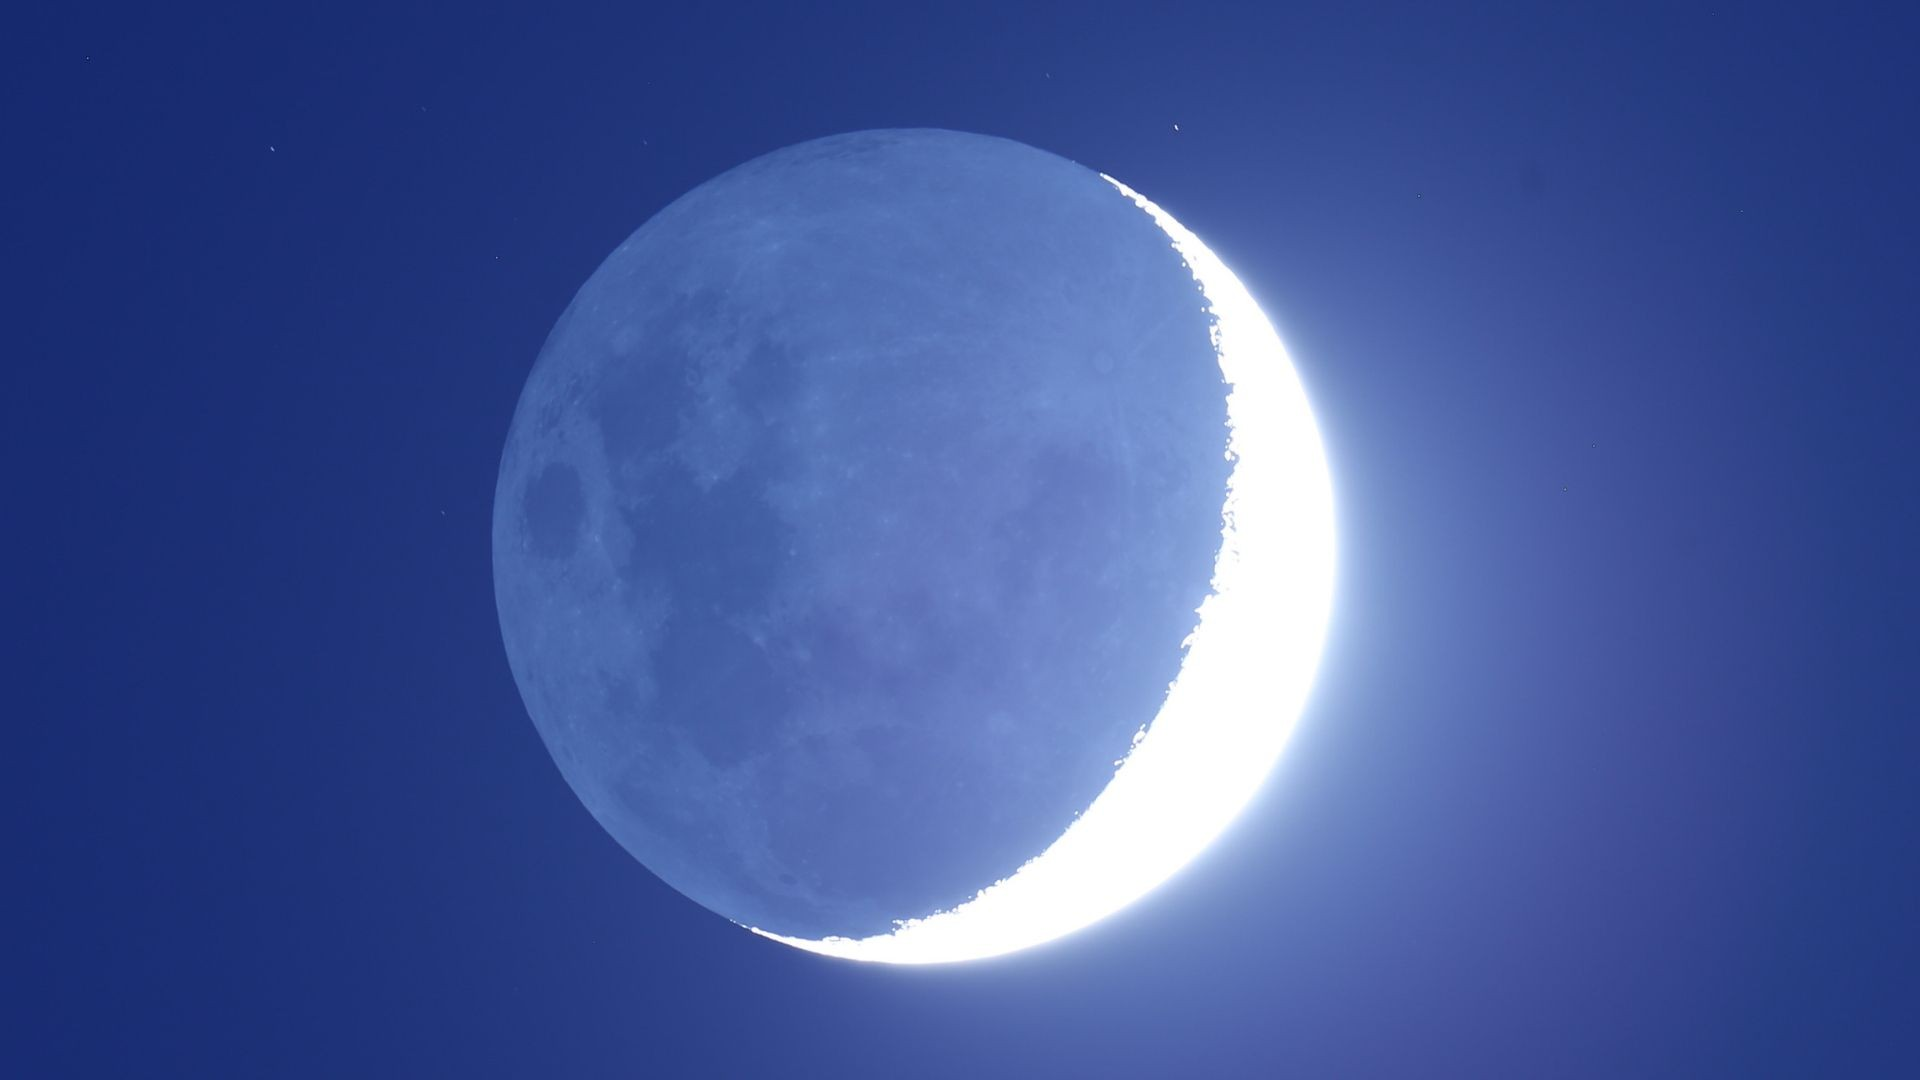 04 - Crescent Moon Rooisand Namibia PlaneWave Atrograph